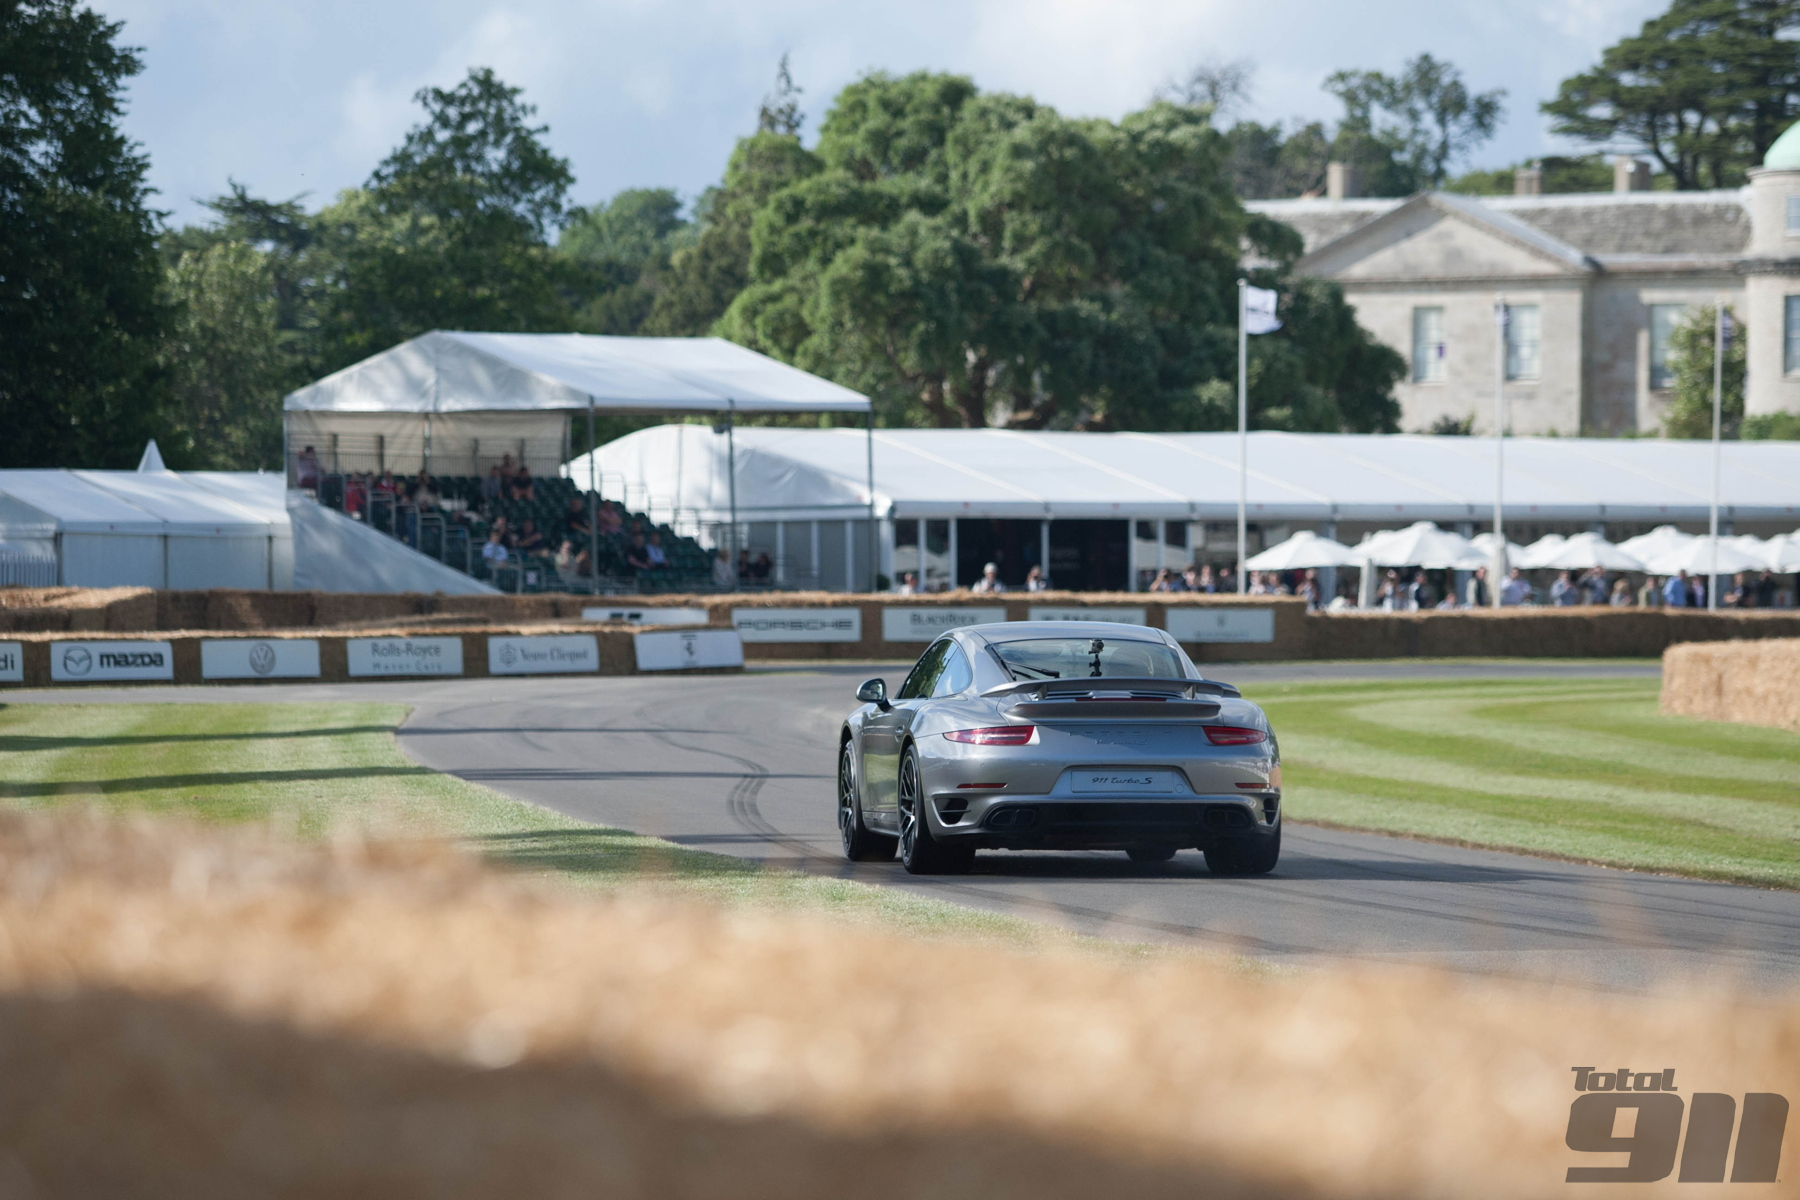 Josh blasts up the Goodwood Festival of Speed hill in a 991 Turbo S. Read about his experiences in the new issue.